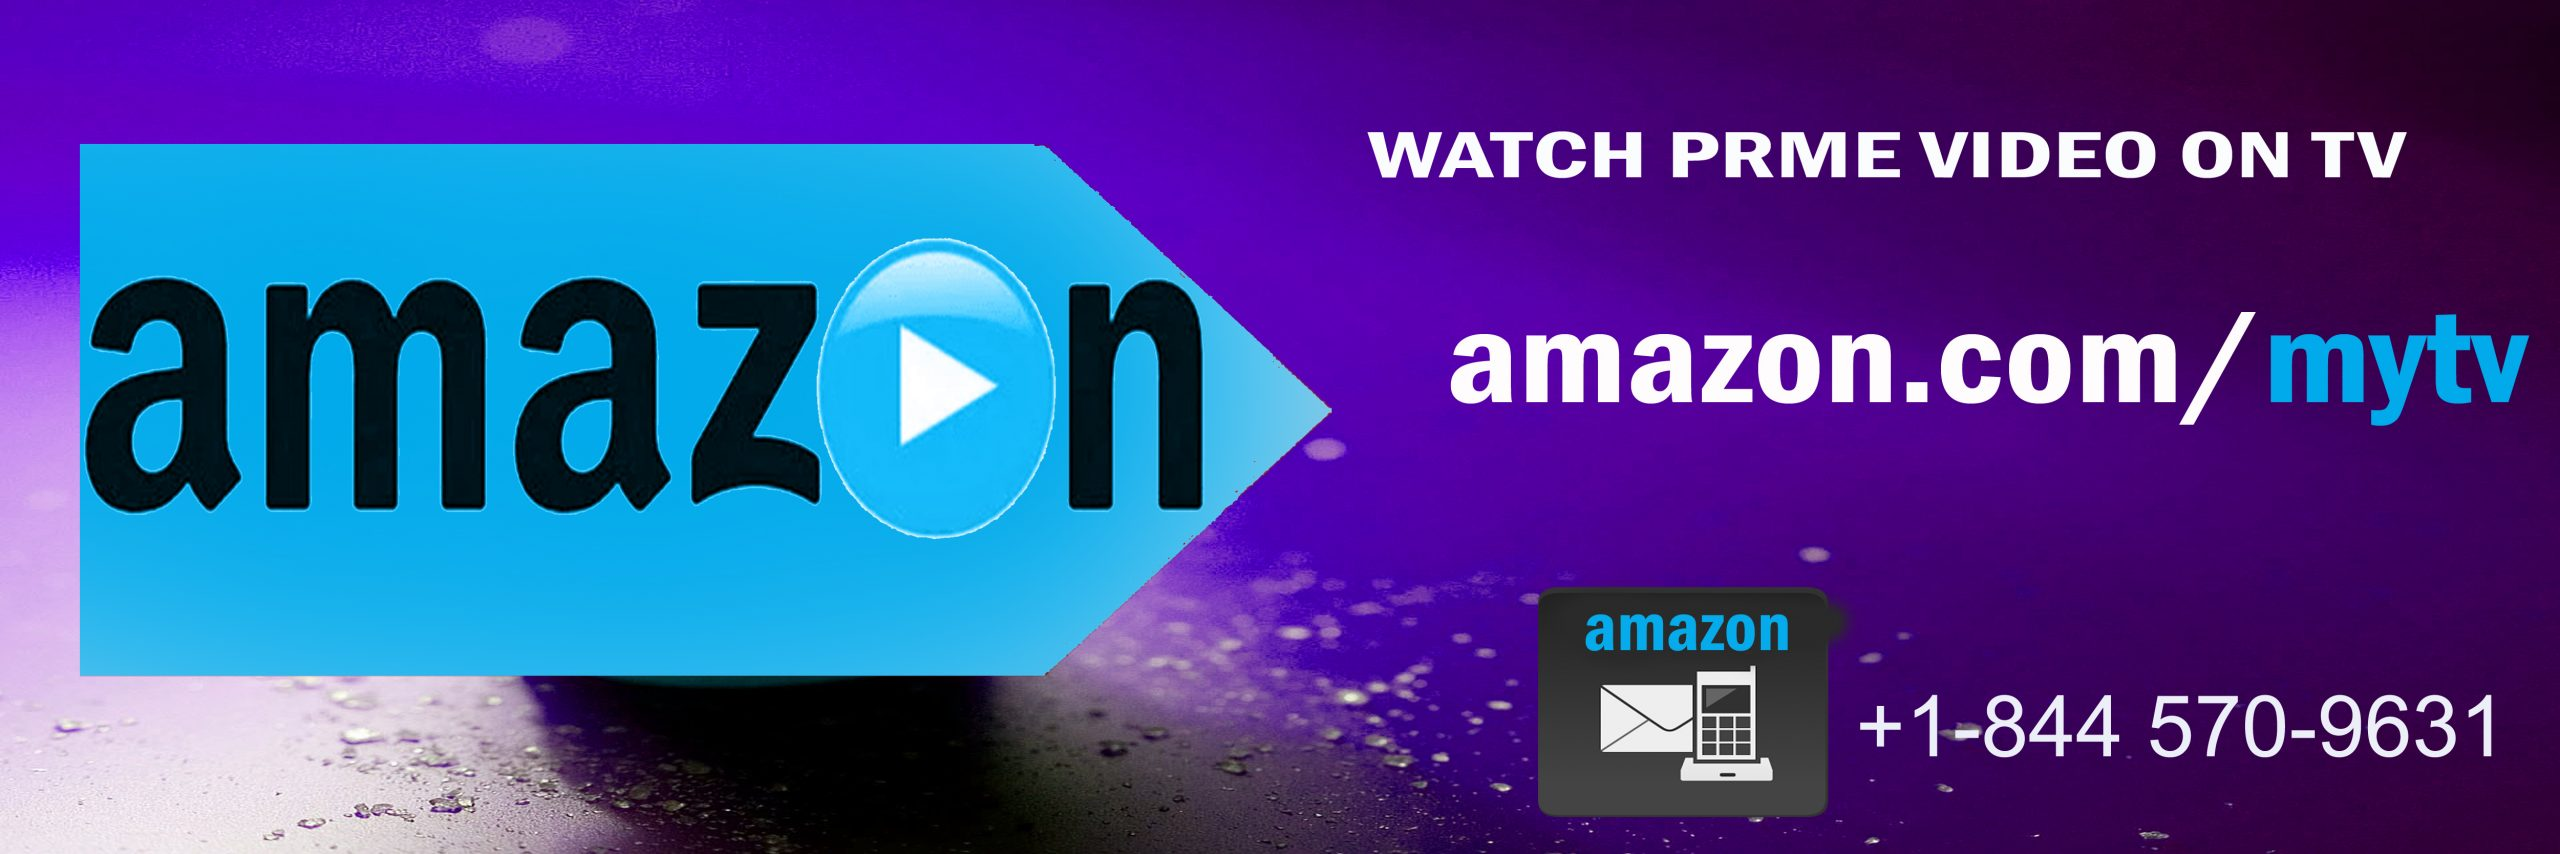 www.amazon.com/mytv - Enter code Here To Activate Prime Video